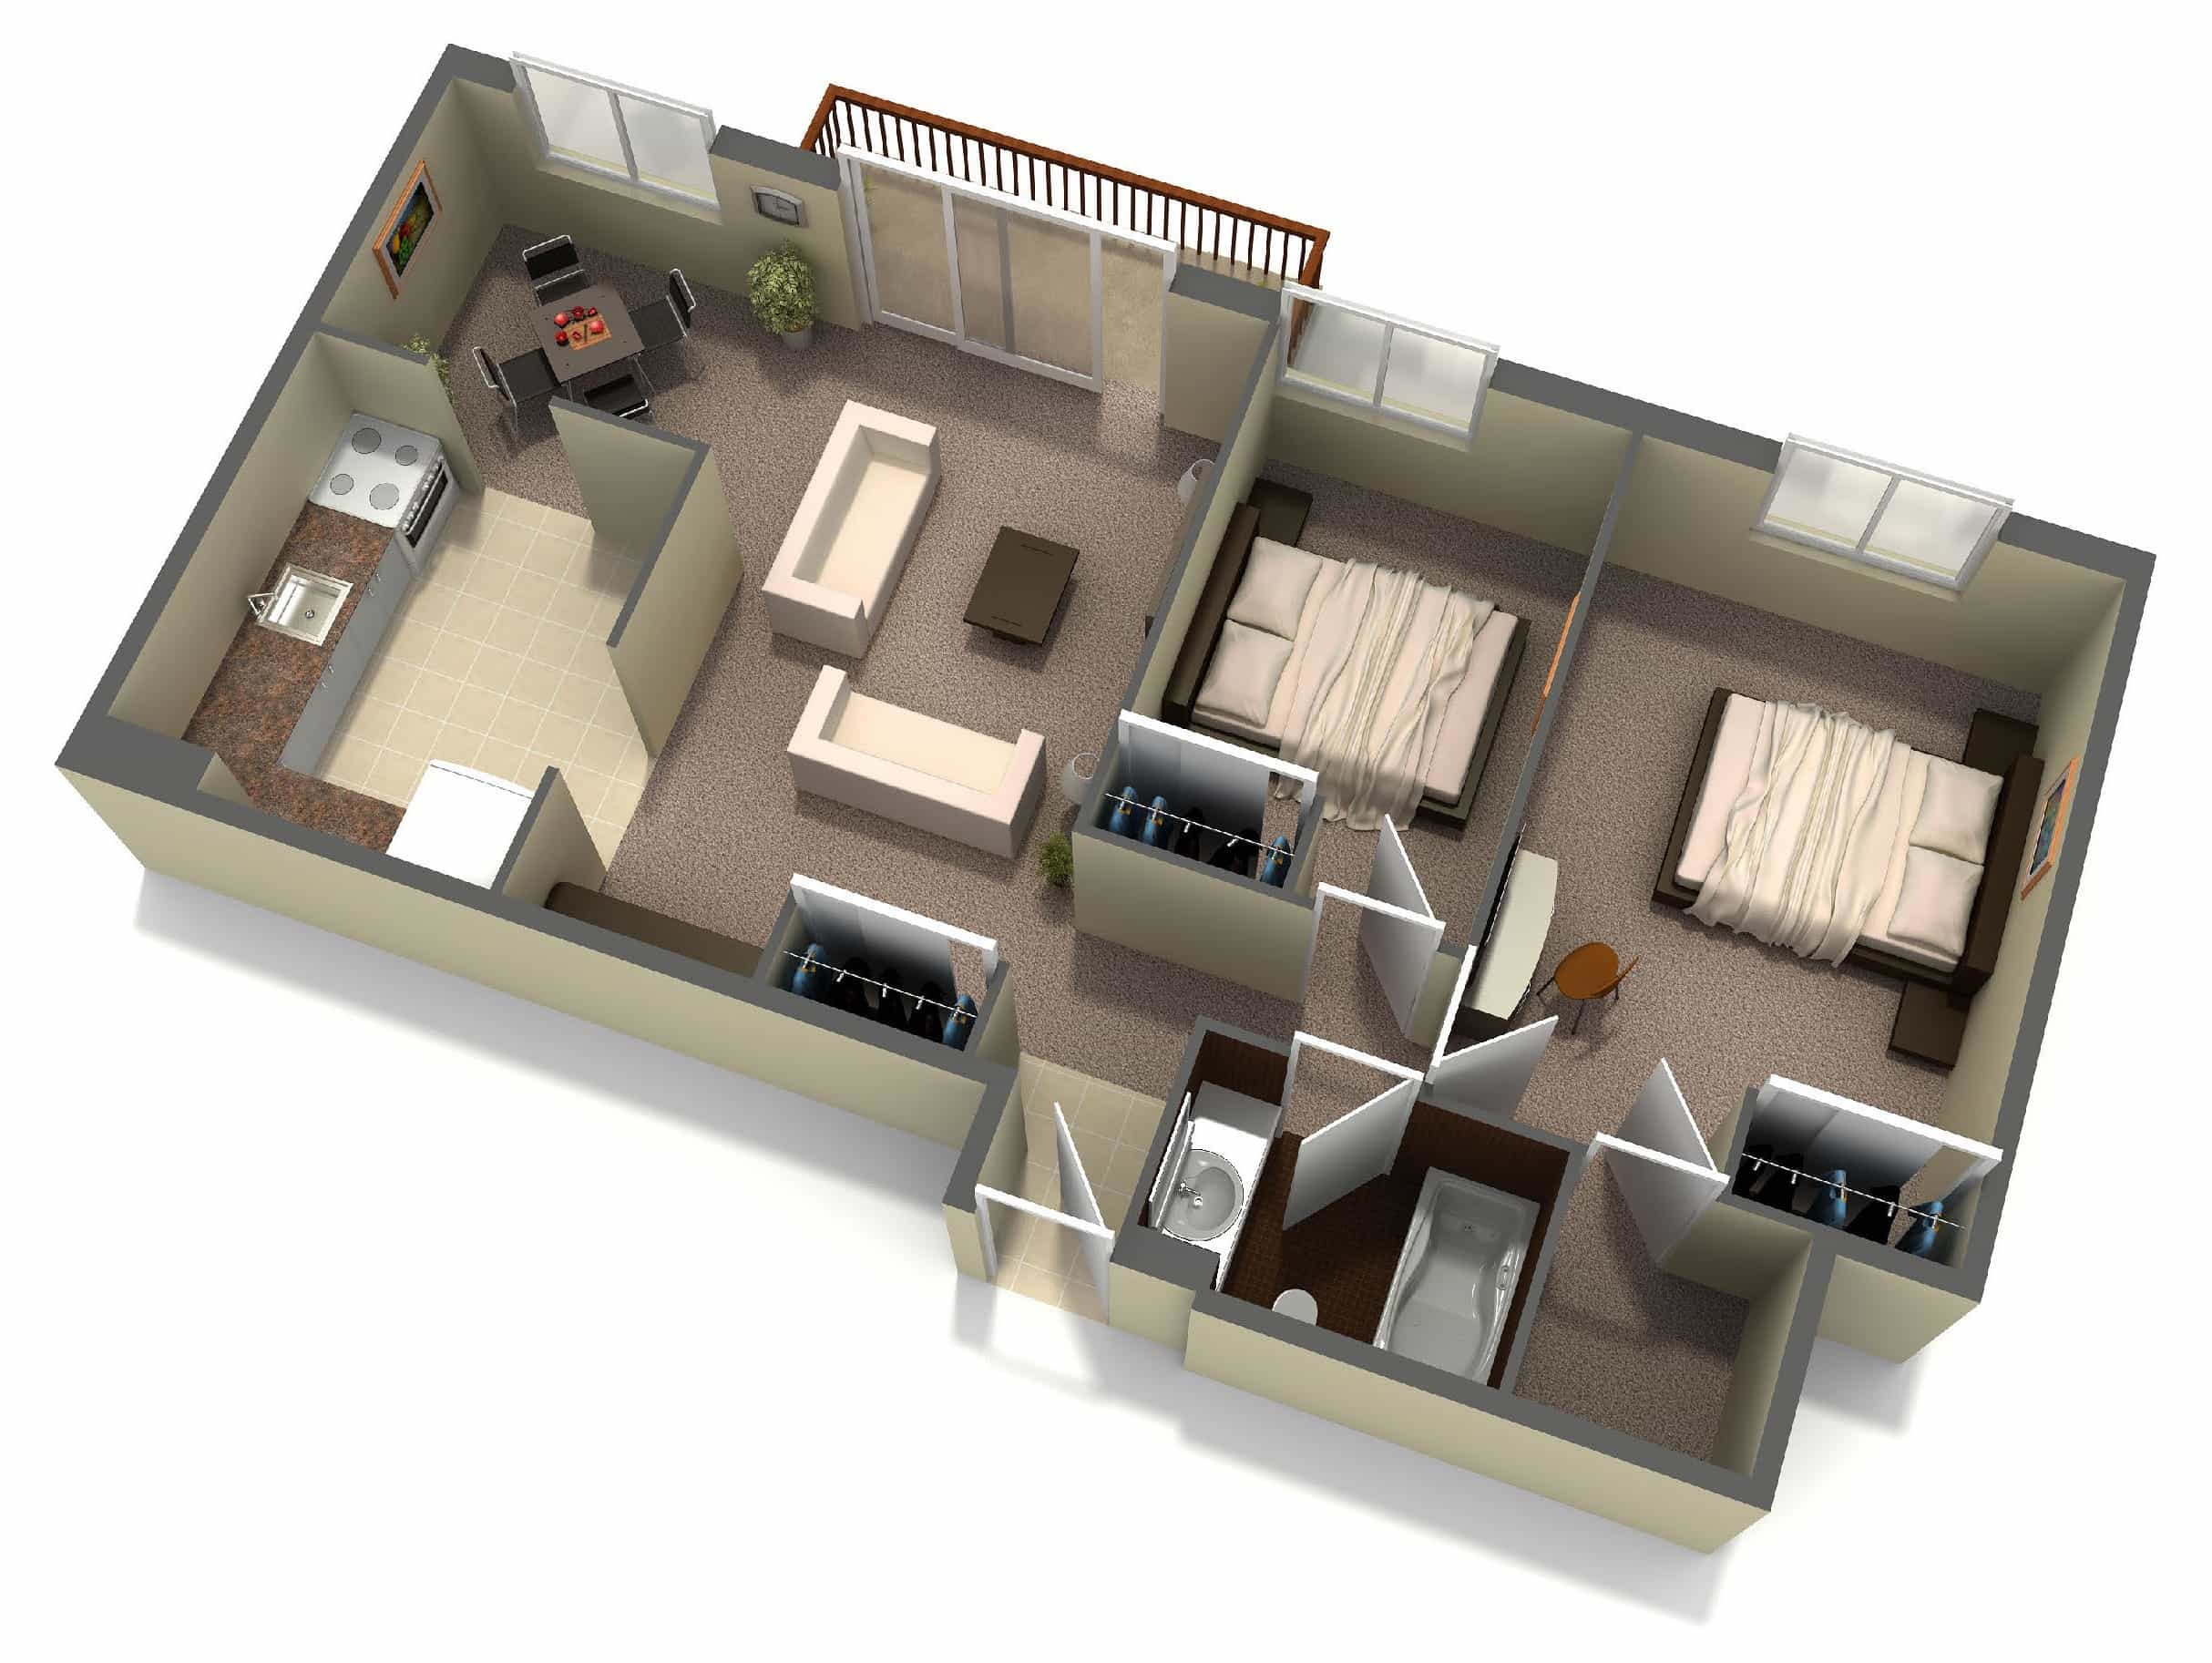 Interior 3d two bedroom house layout design plans 3 of for Create house design 3d